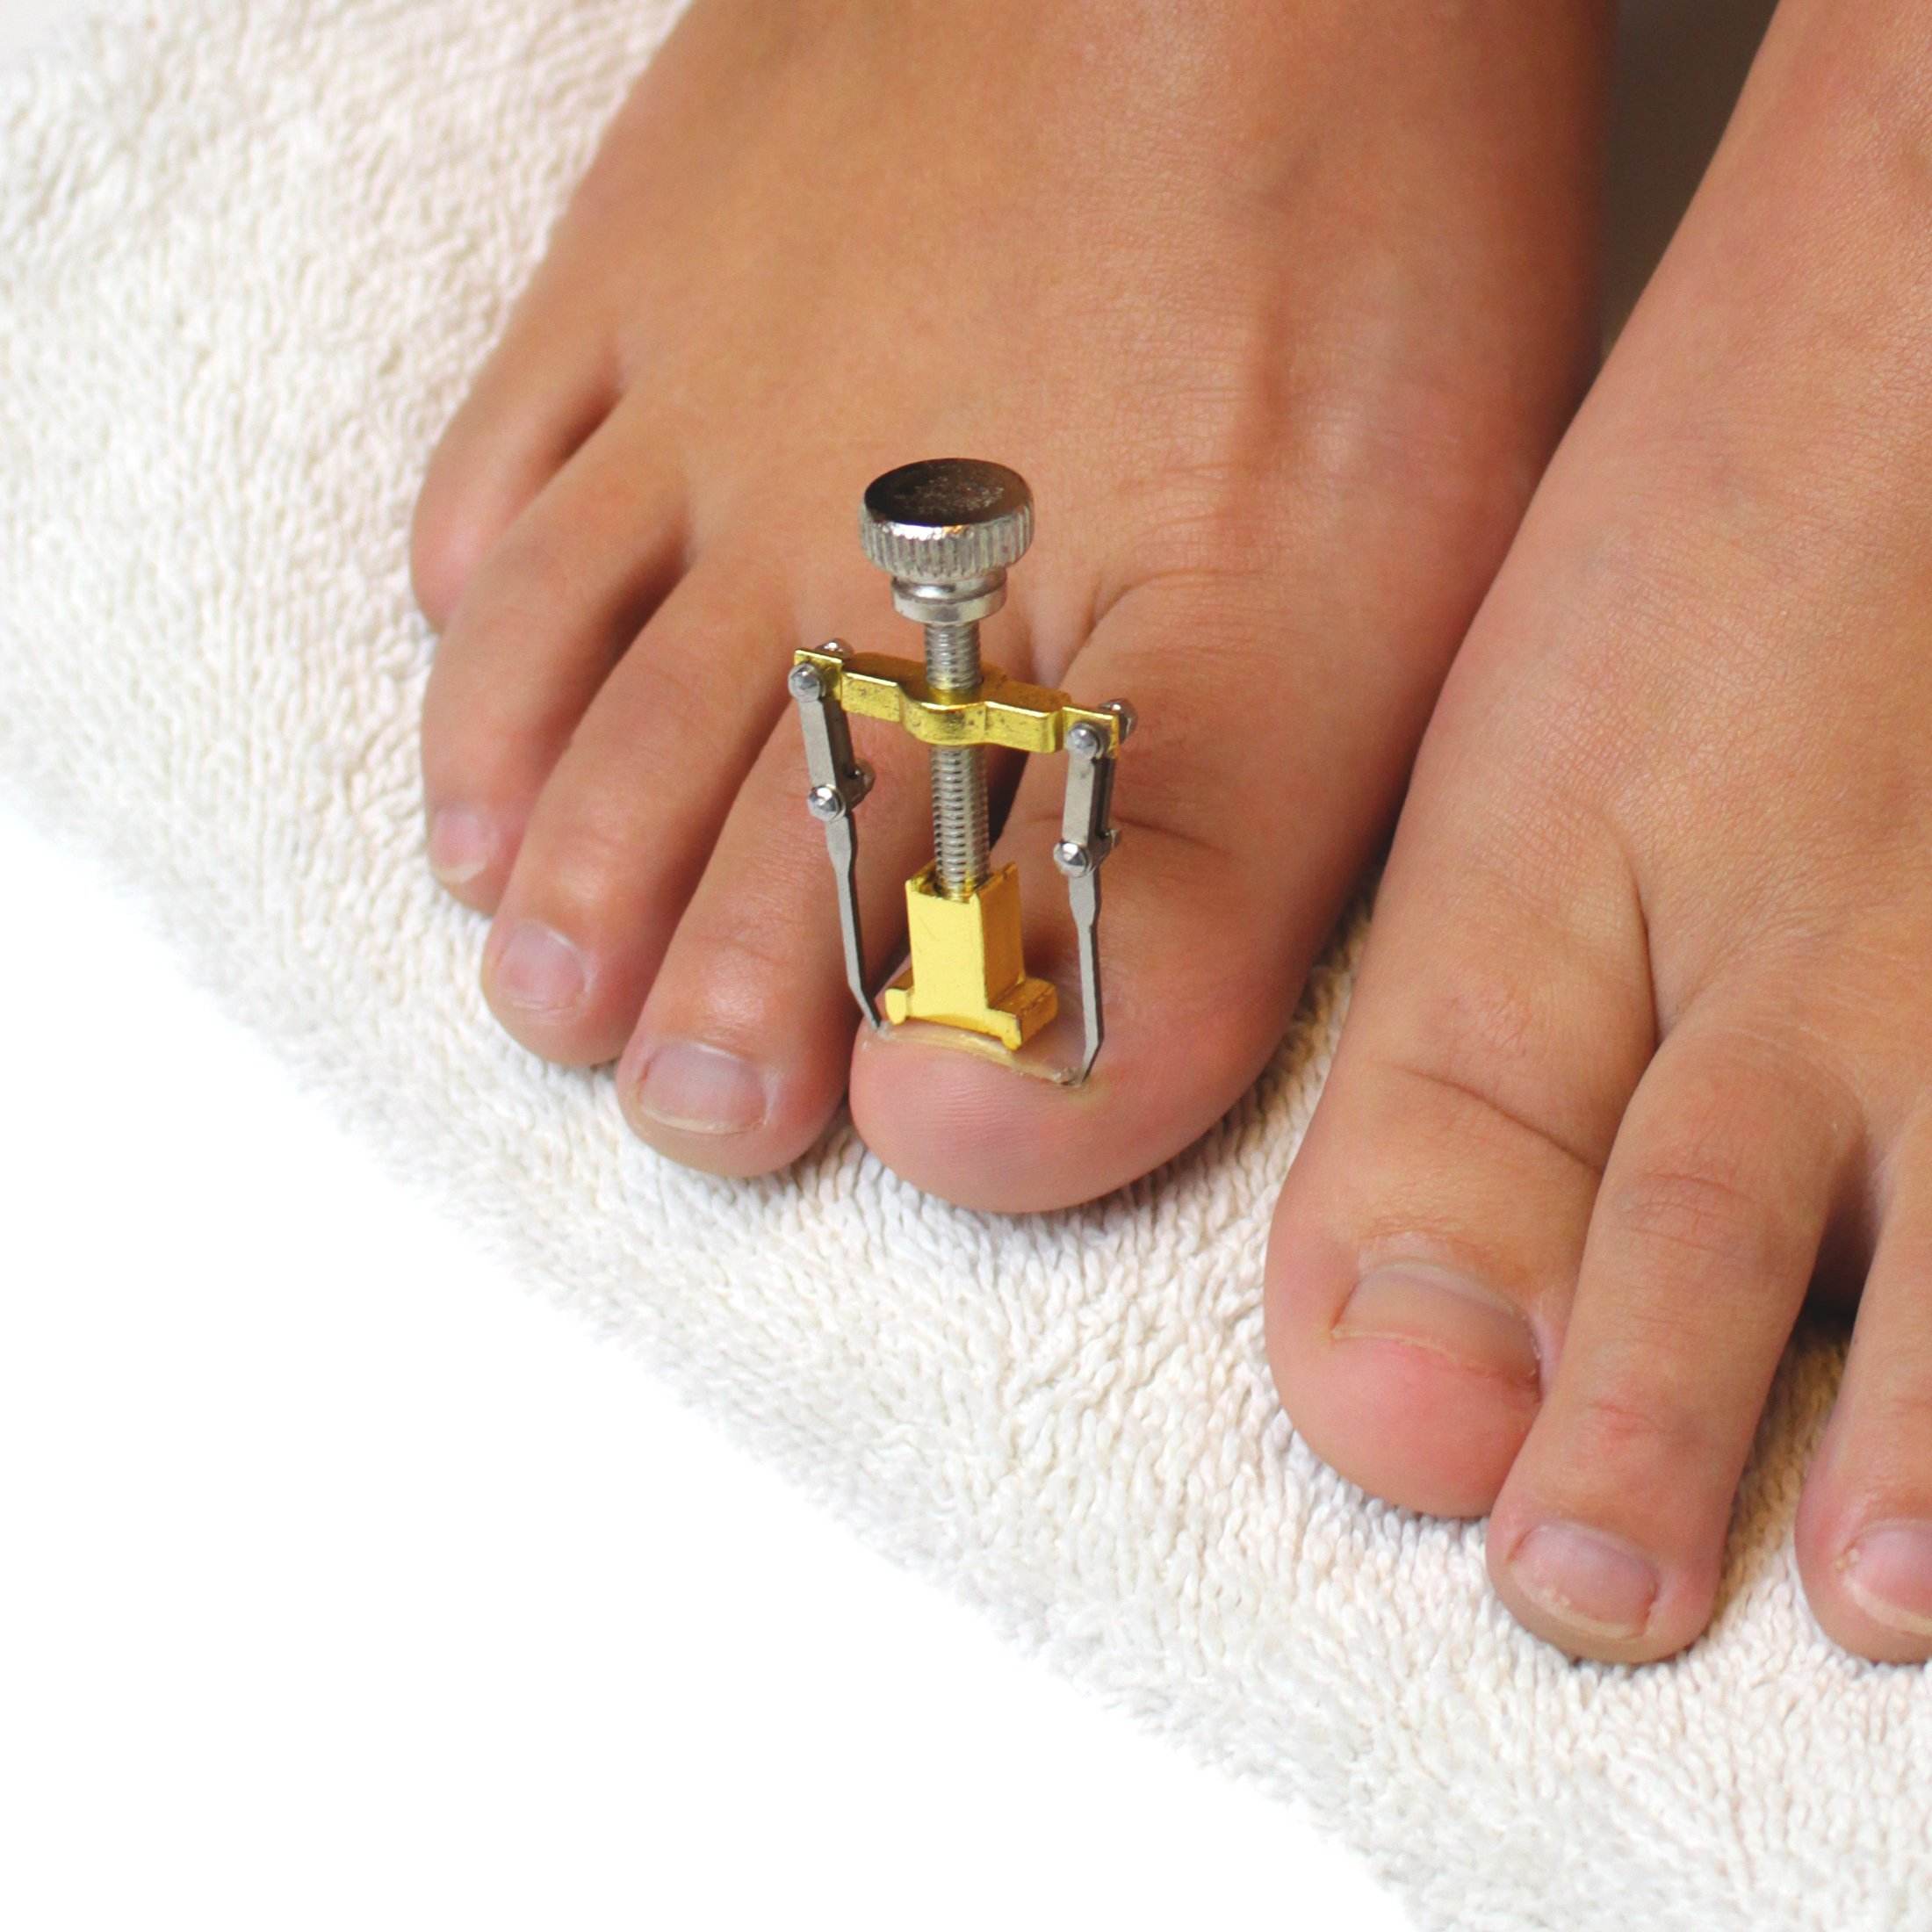 ProToe Ingrown Toenail Tool Correction Relief Pedicure - Stainless Steel Gold and Silver by ProToe (Image #3)